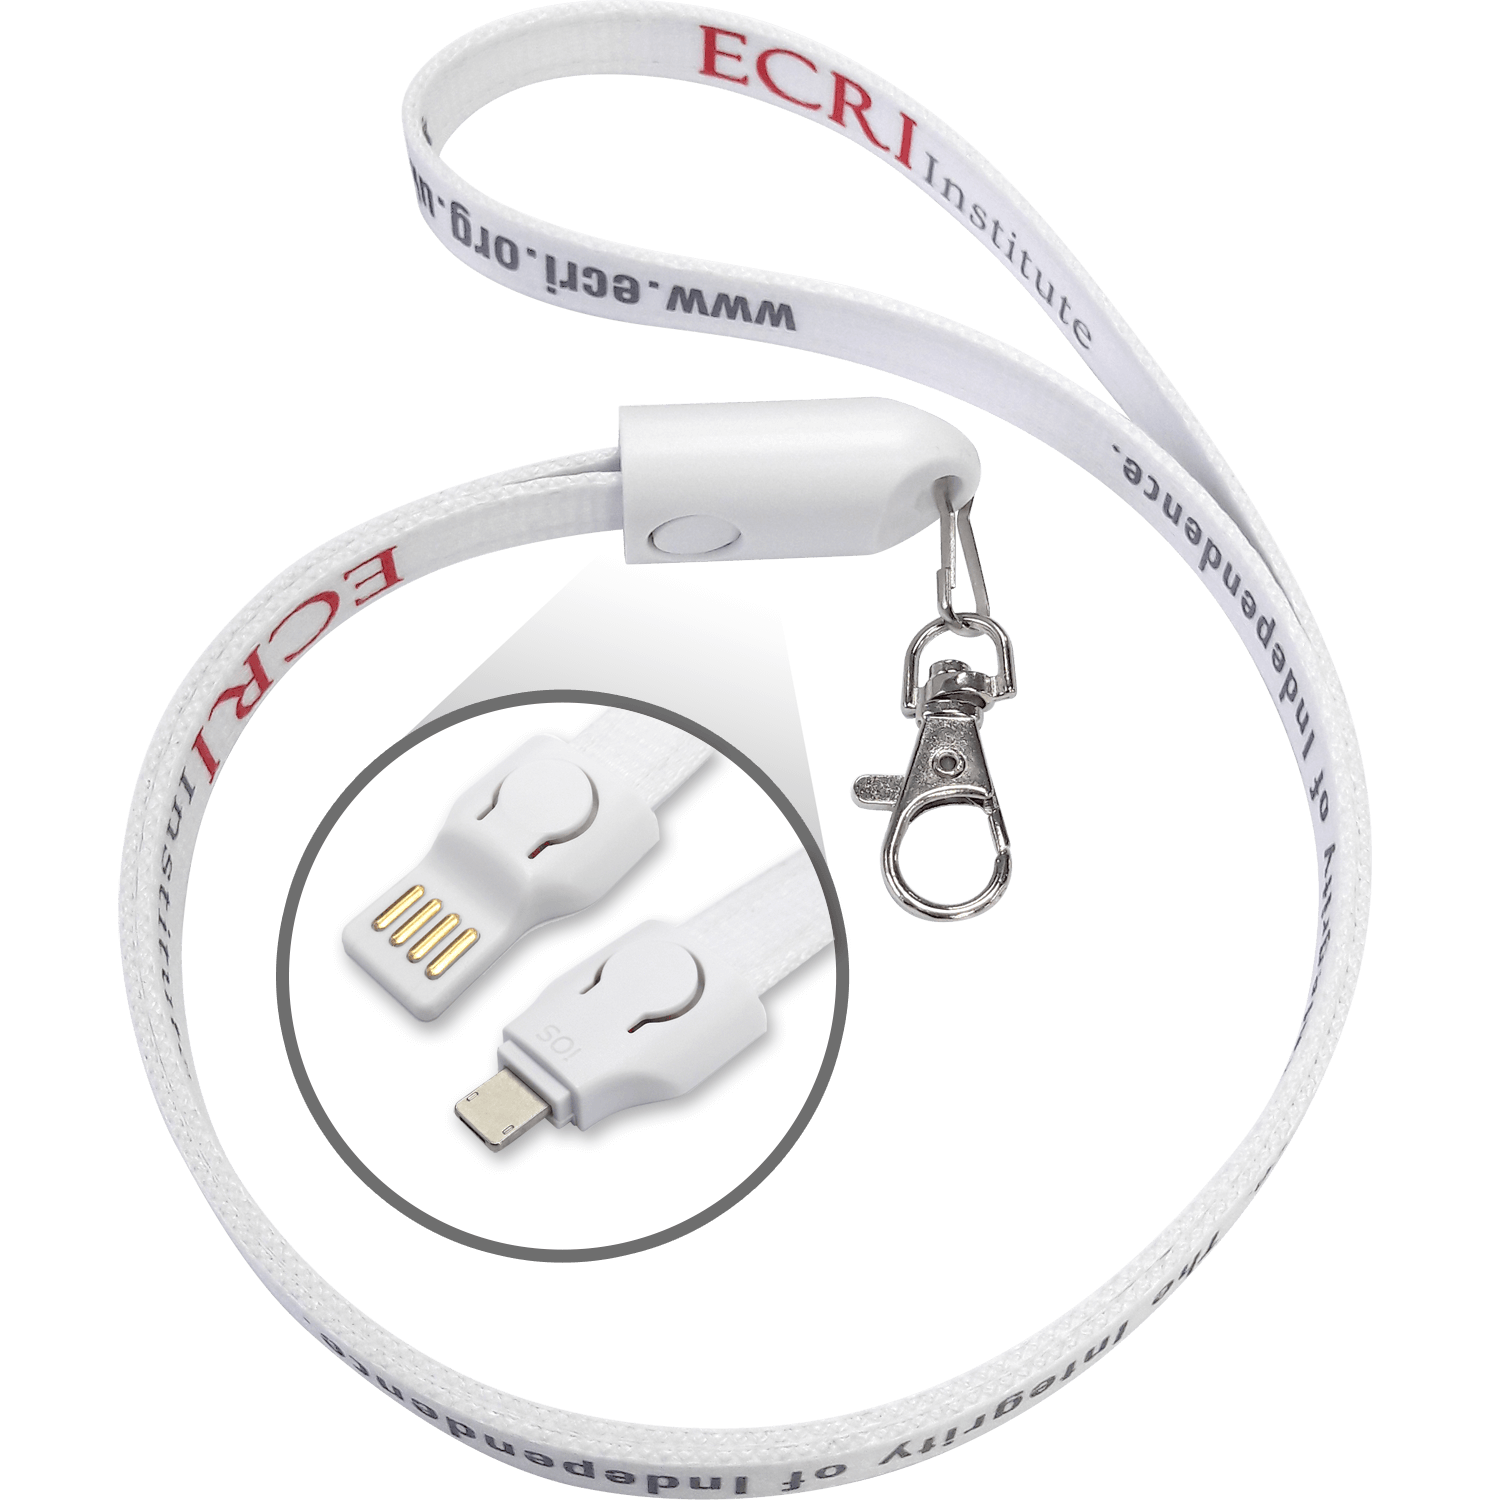 2 in 1 USB Lanyard Cables